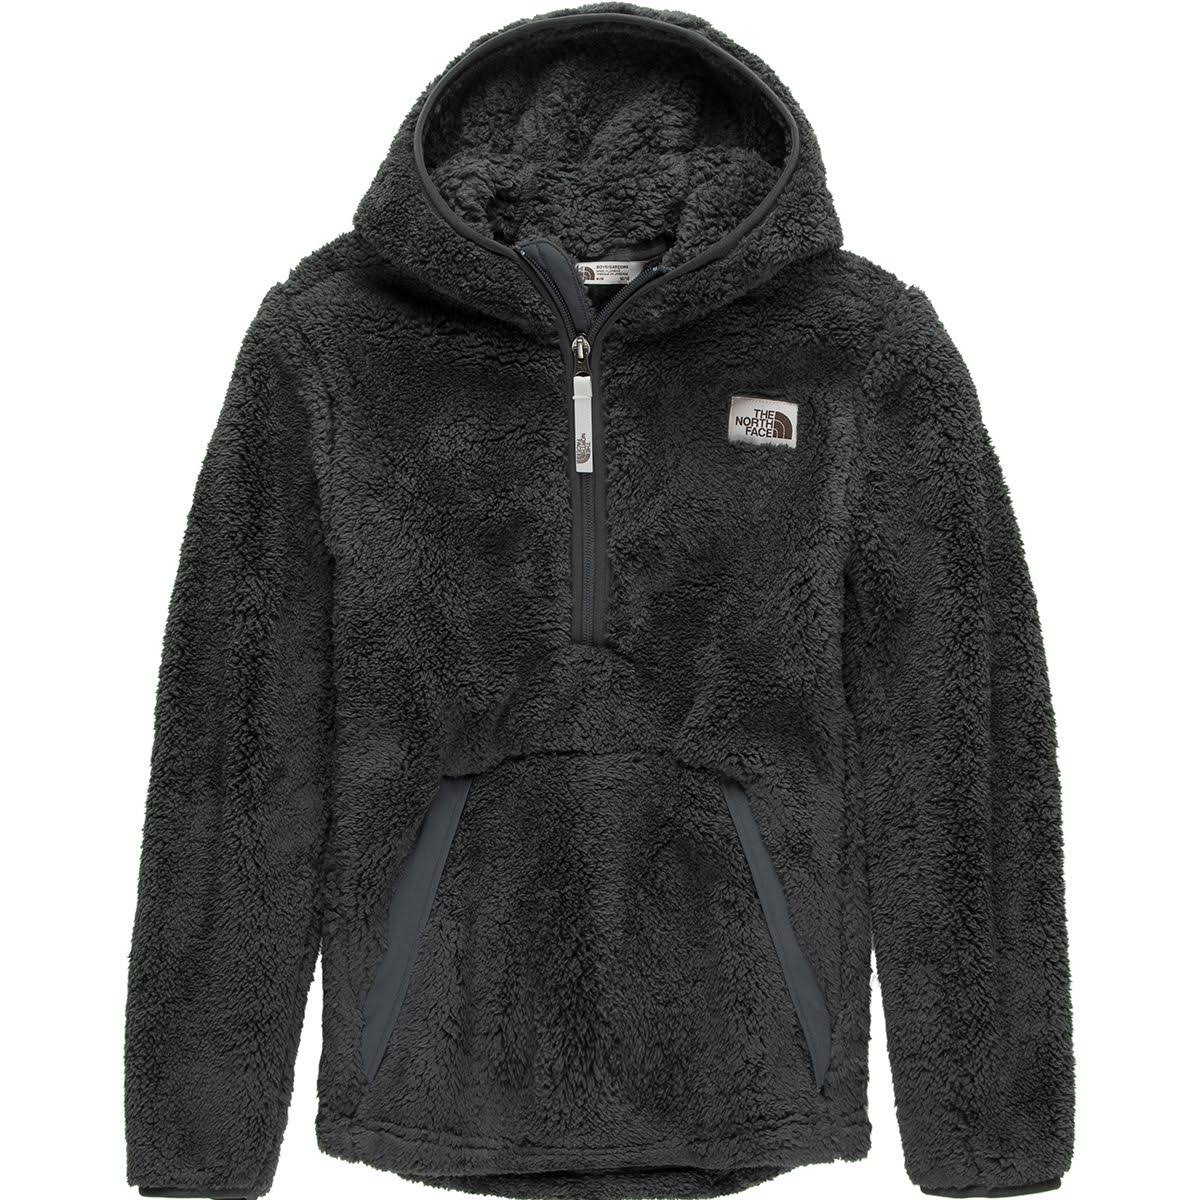 The North Face Boys' Campshire Hoodie - Asphalt Grey - M